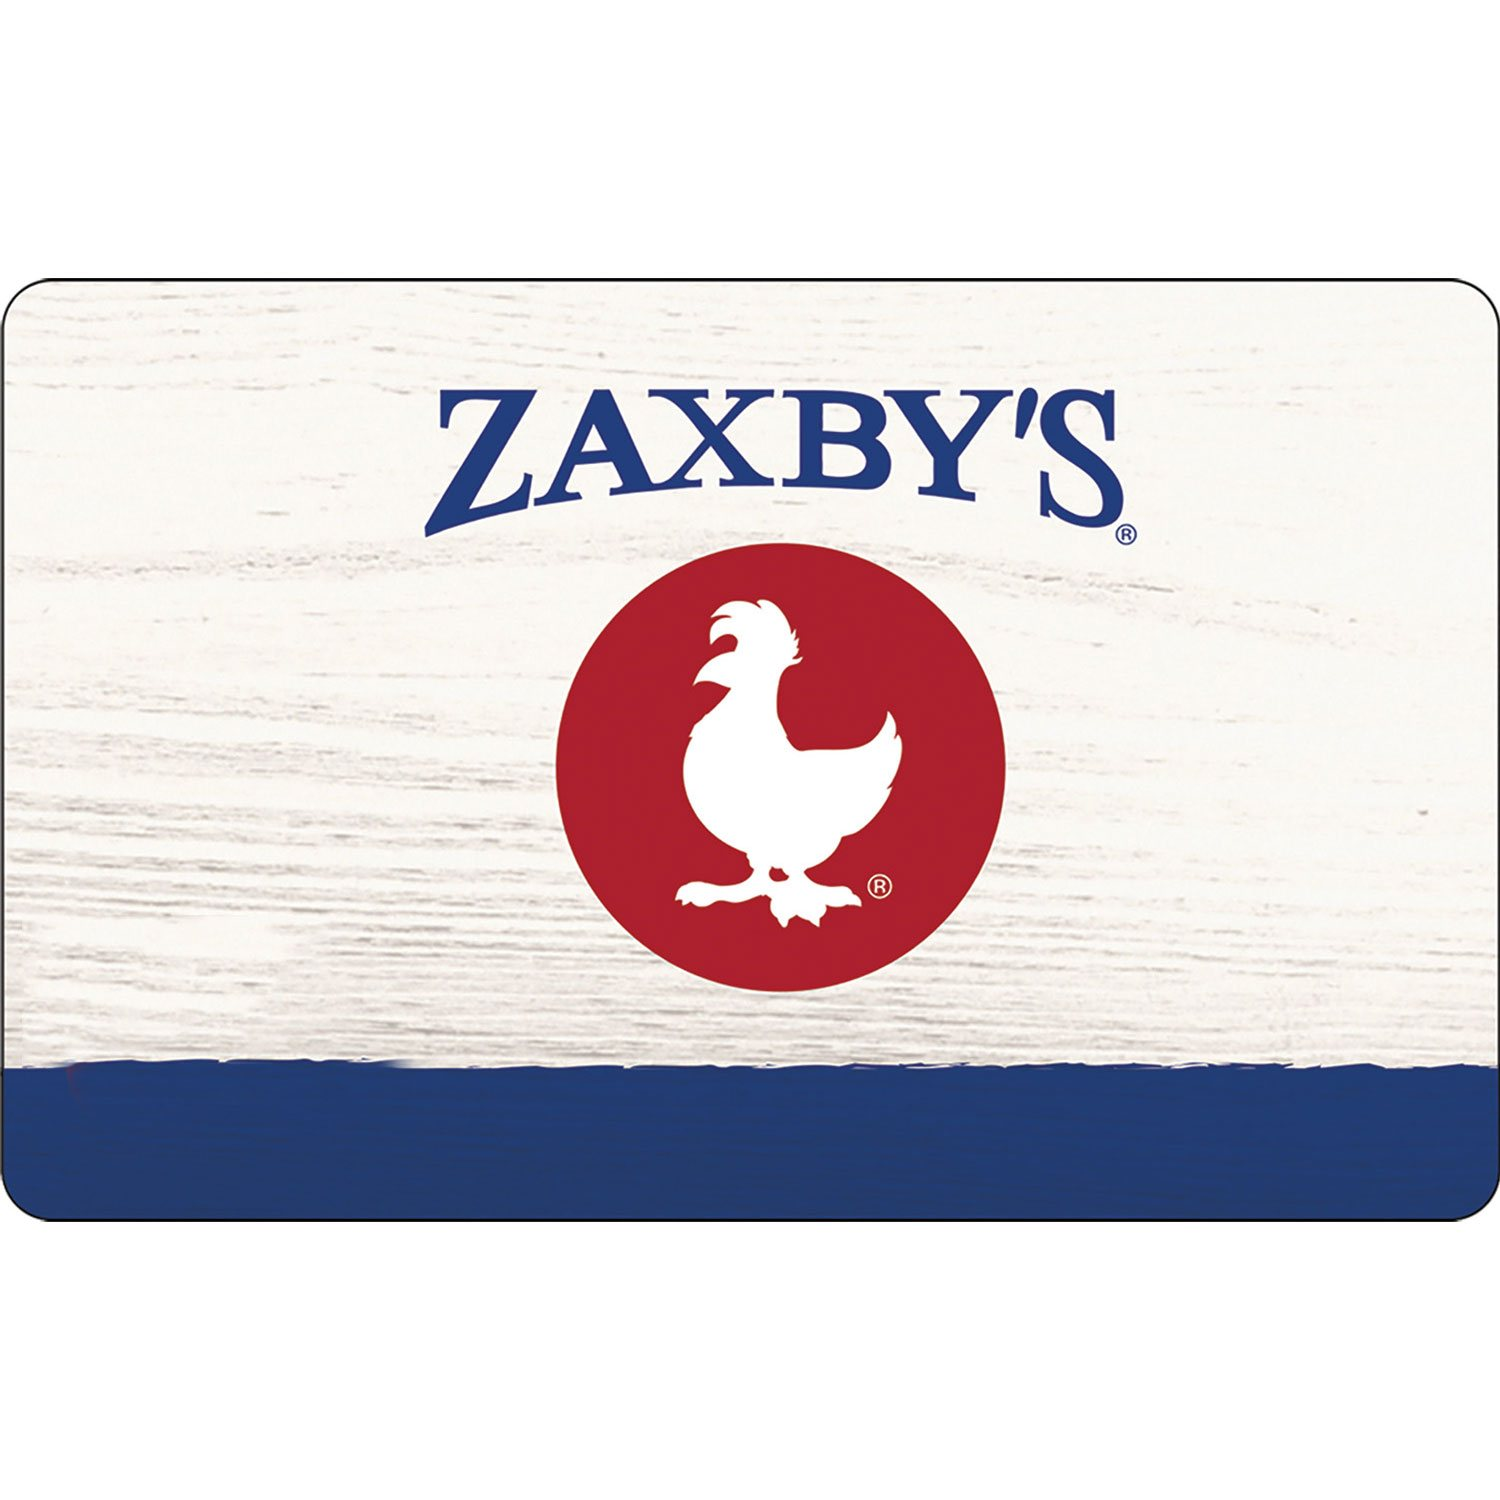 $35.98 for this $50 Zaxbys Gif...